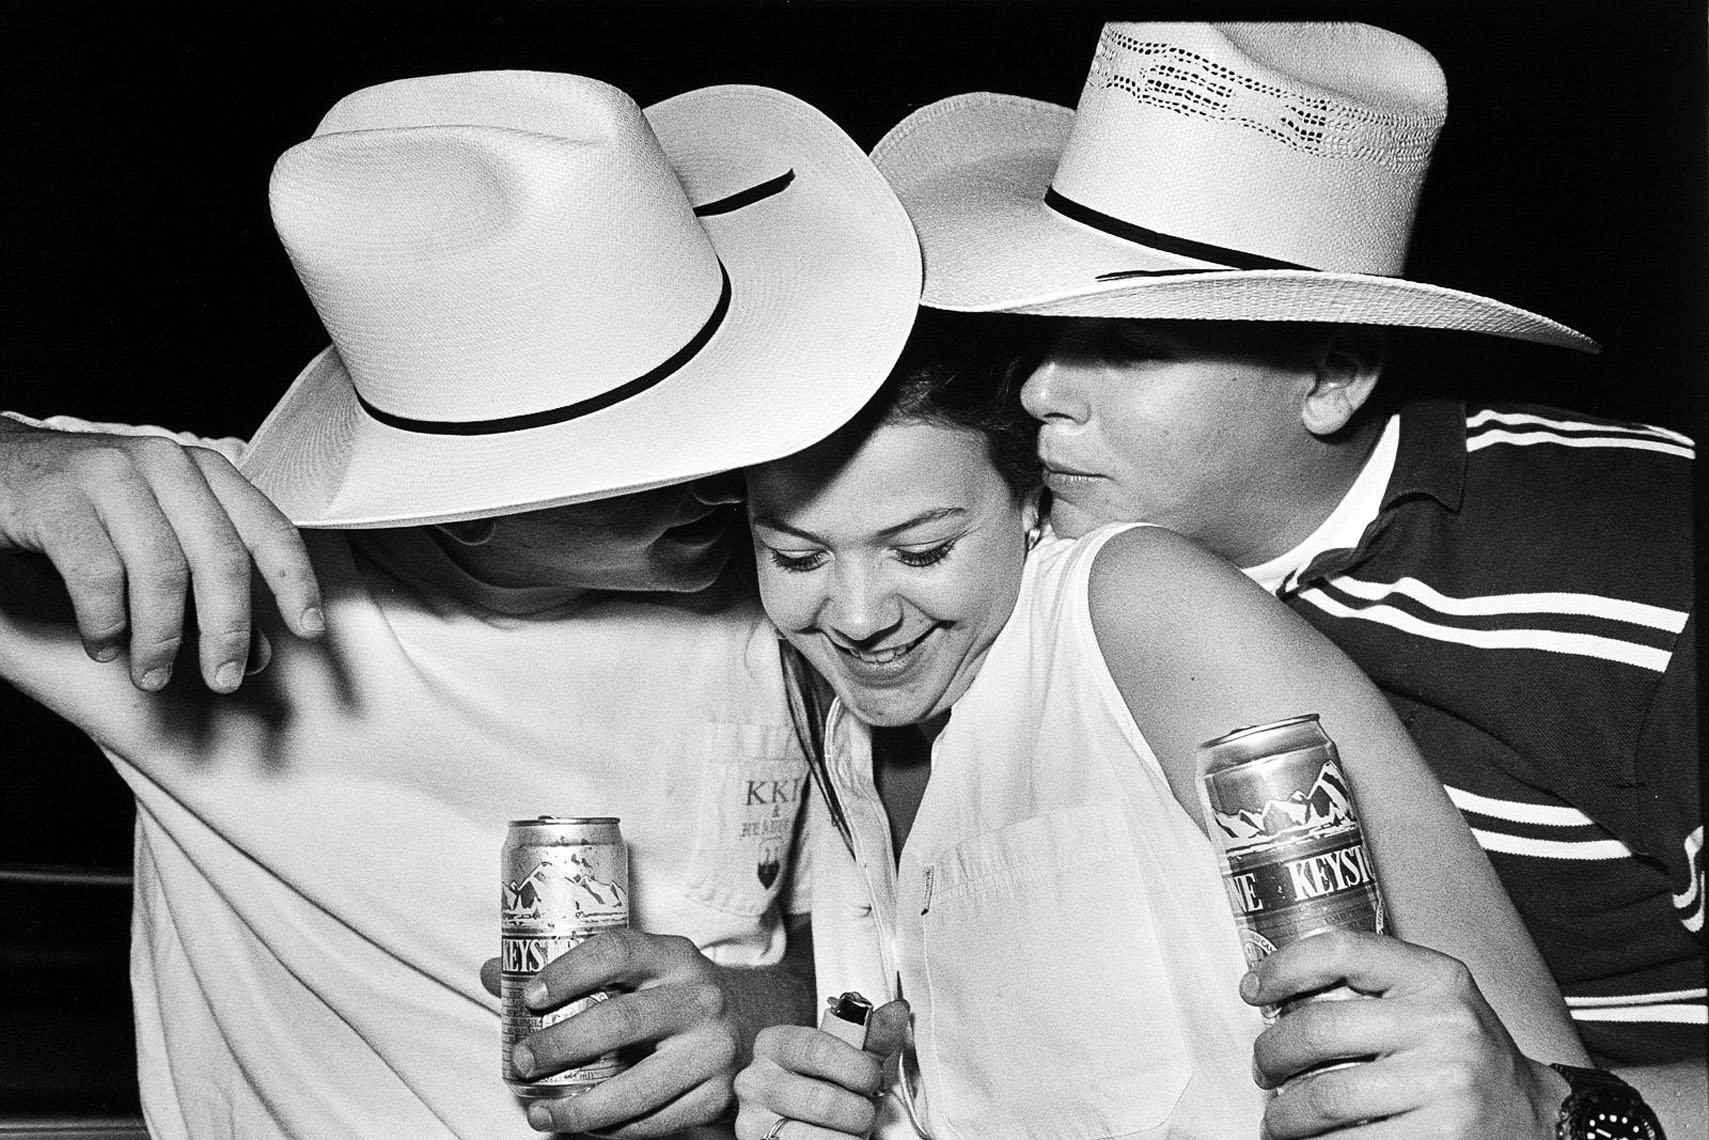 1167High School kids drinking beer, cowboy hats